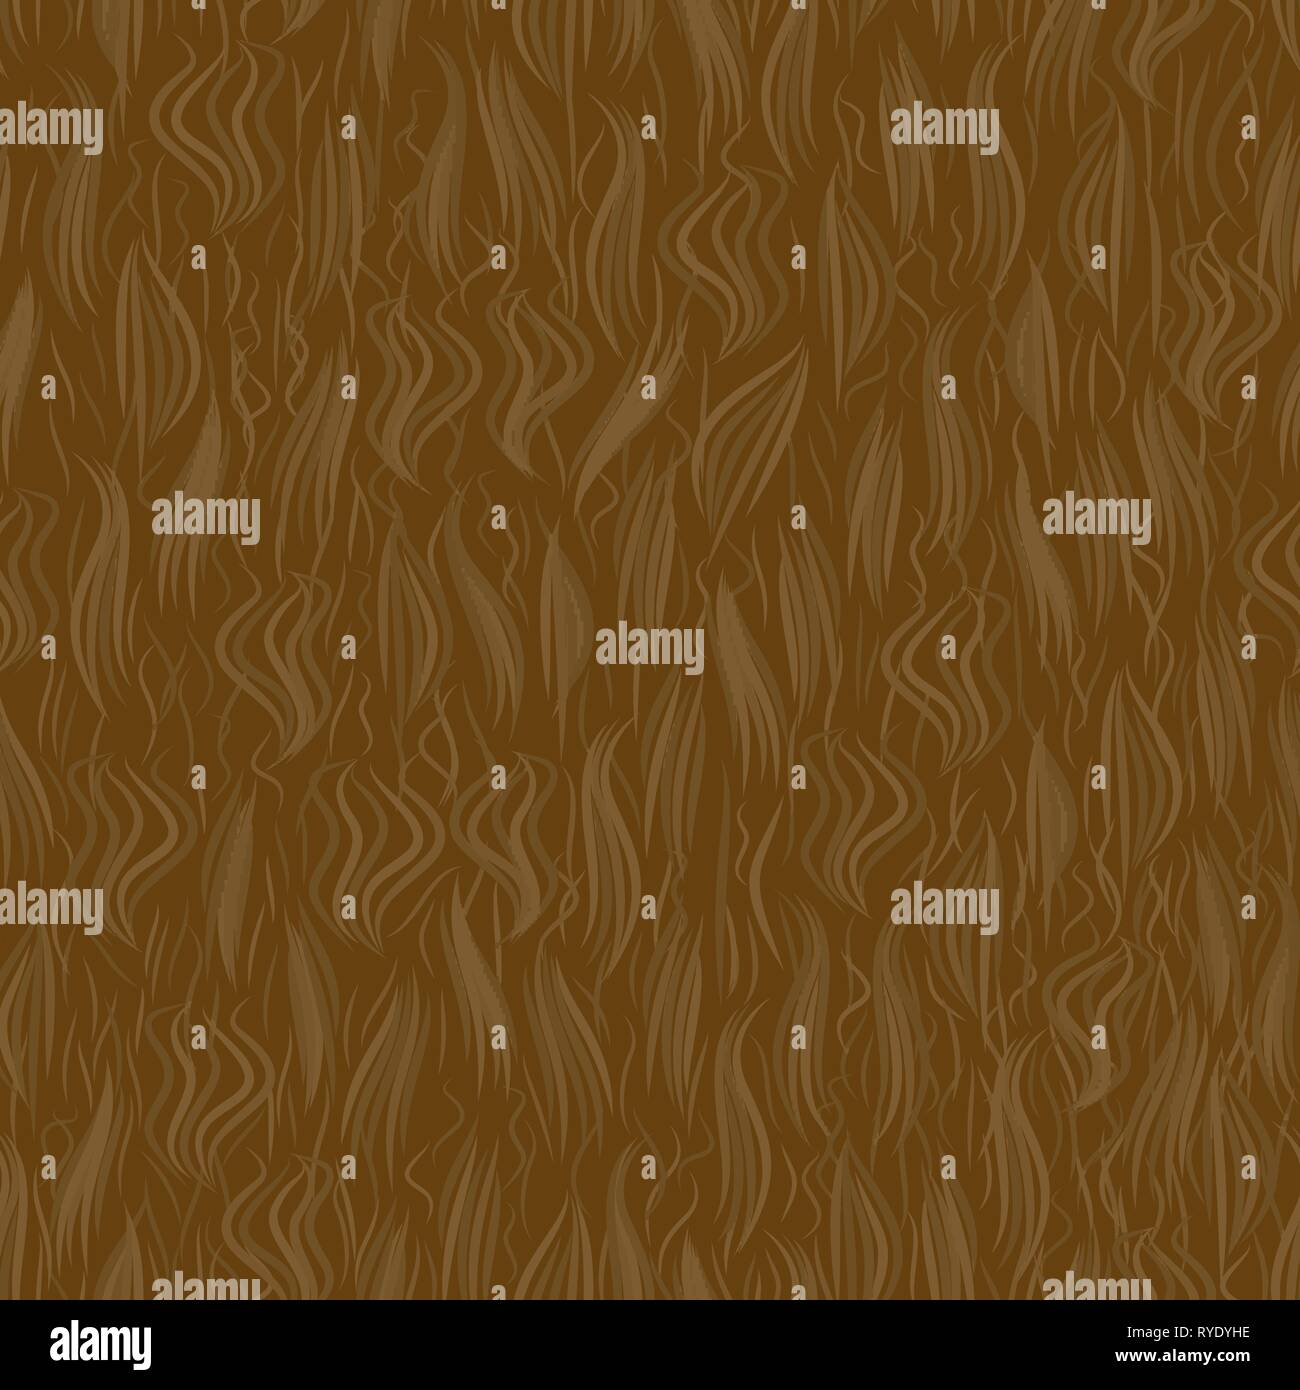 The texture of the brown wool. Seamless pattern background. Vector illustration. Animal skin. - Stock Vector